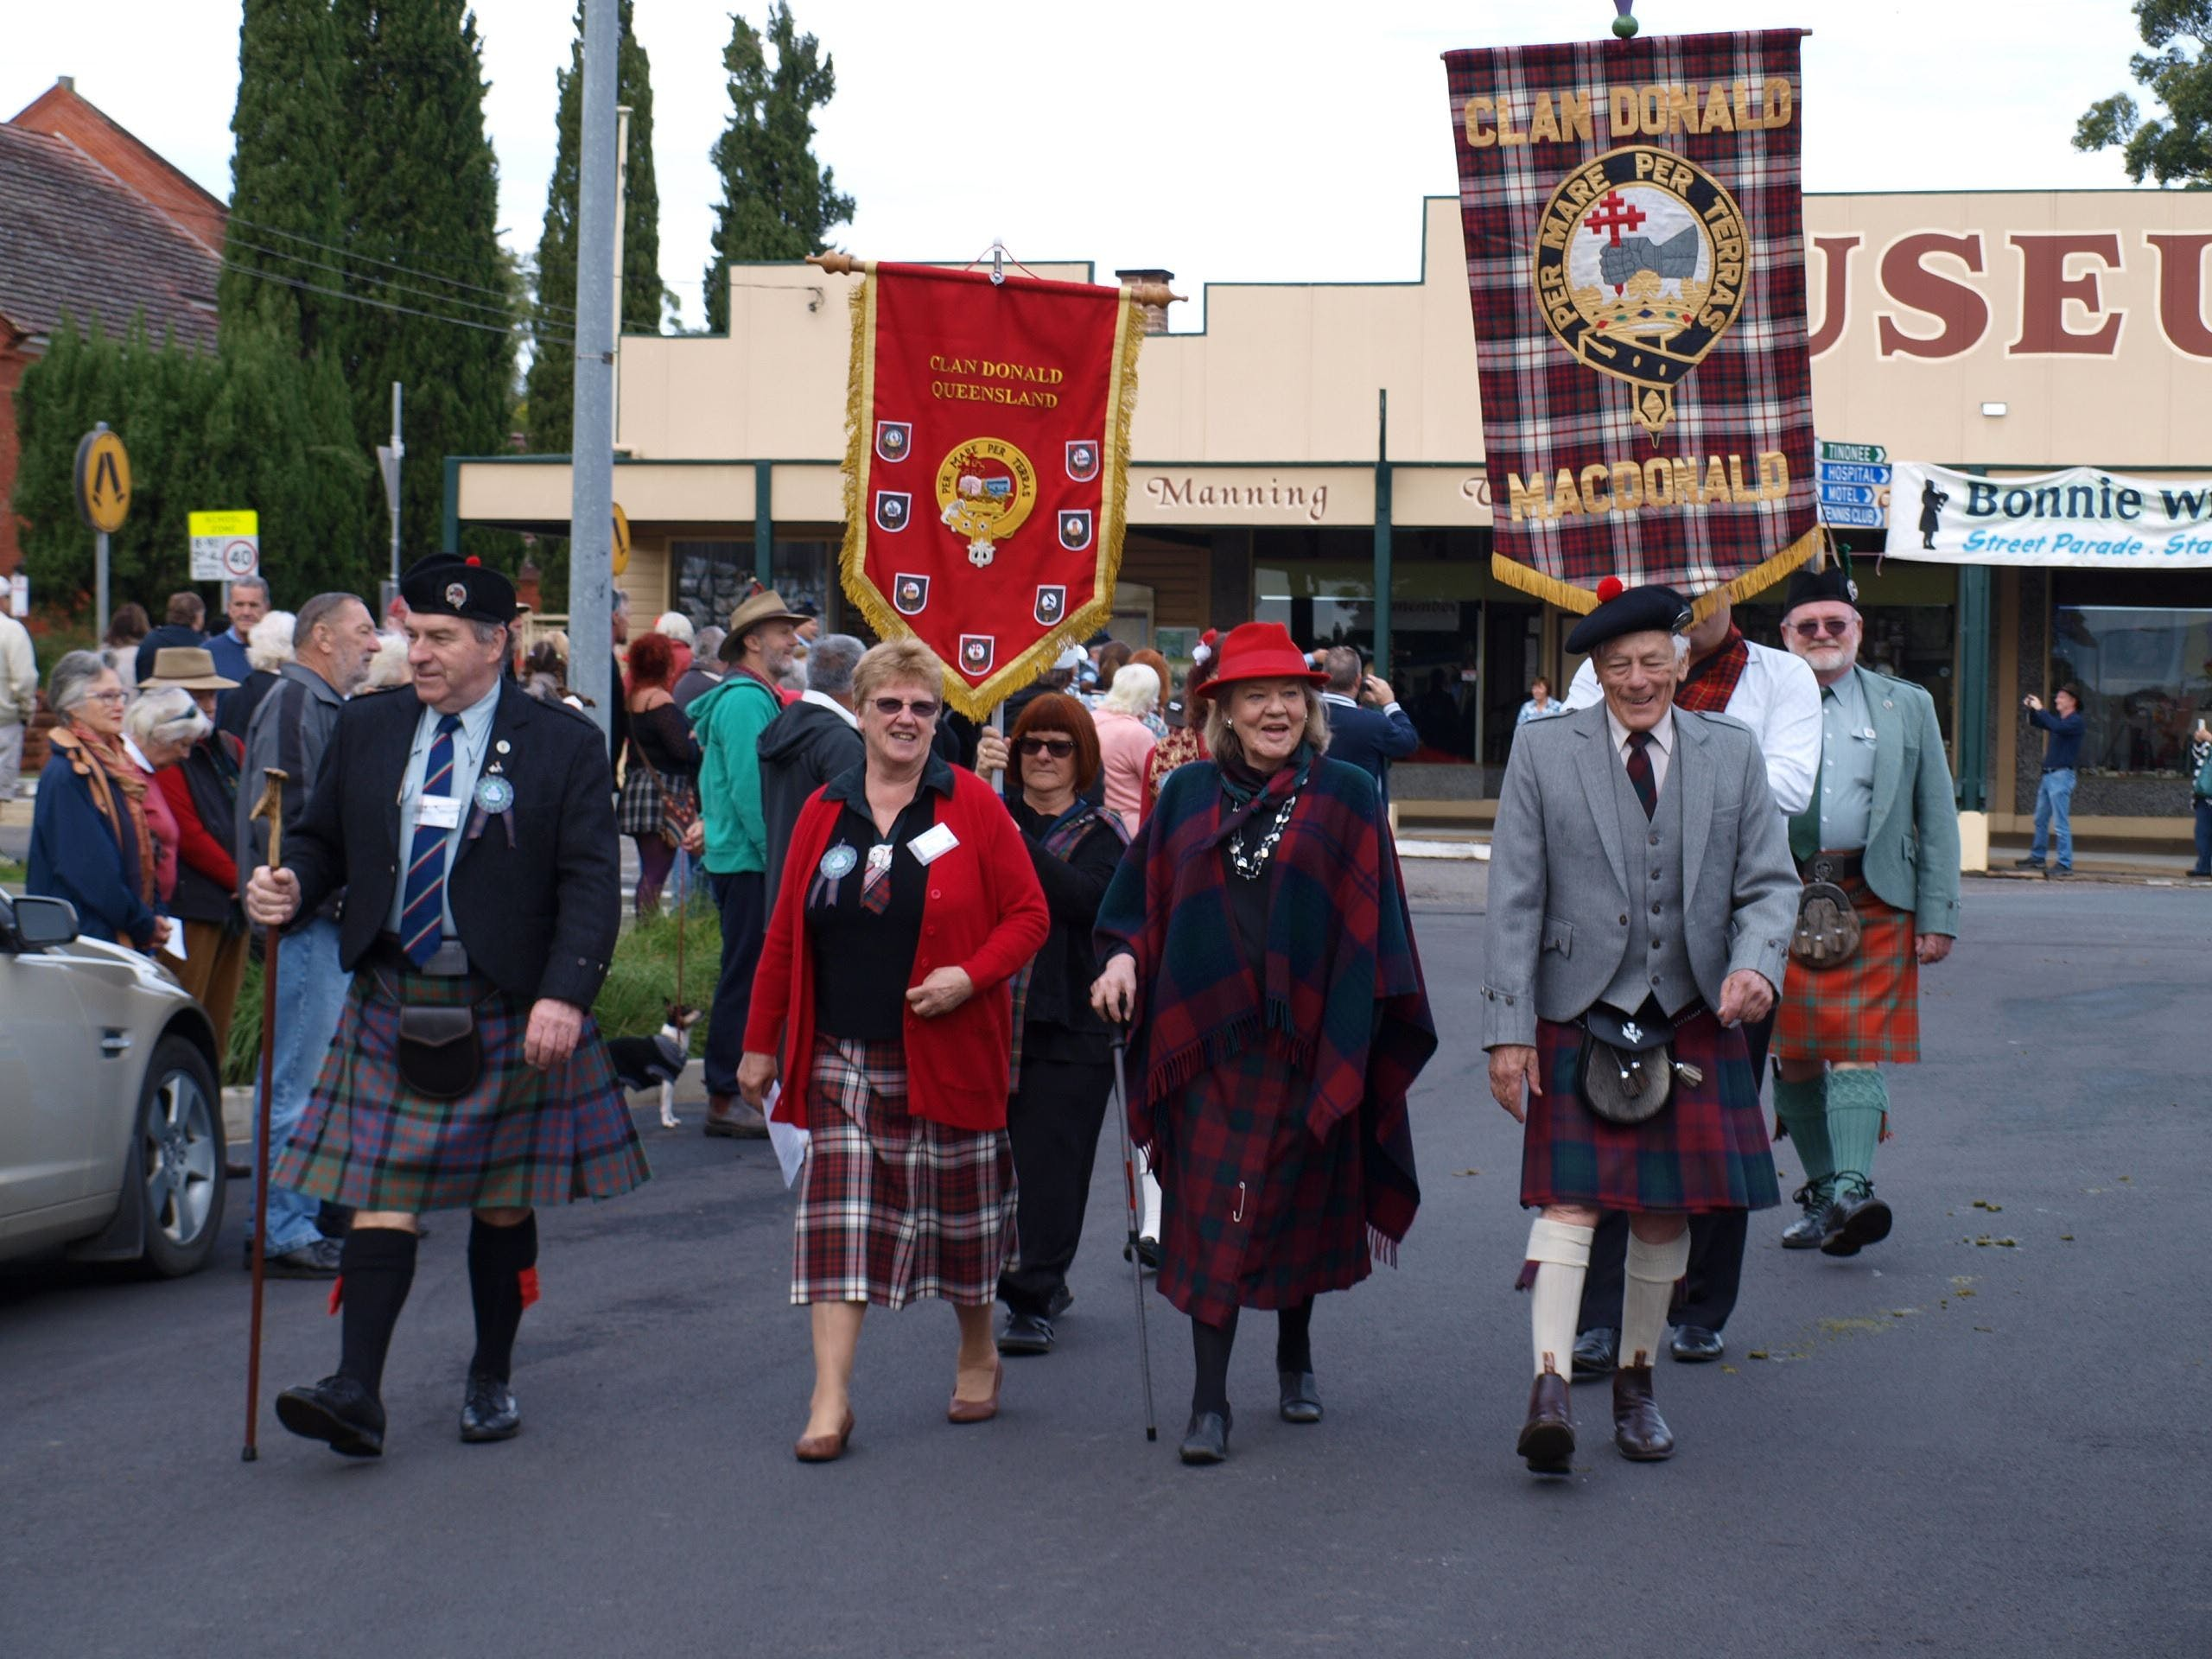 Bonnie Wingham Scottish Festival - Accommodation Tasmania